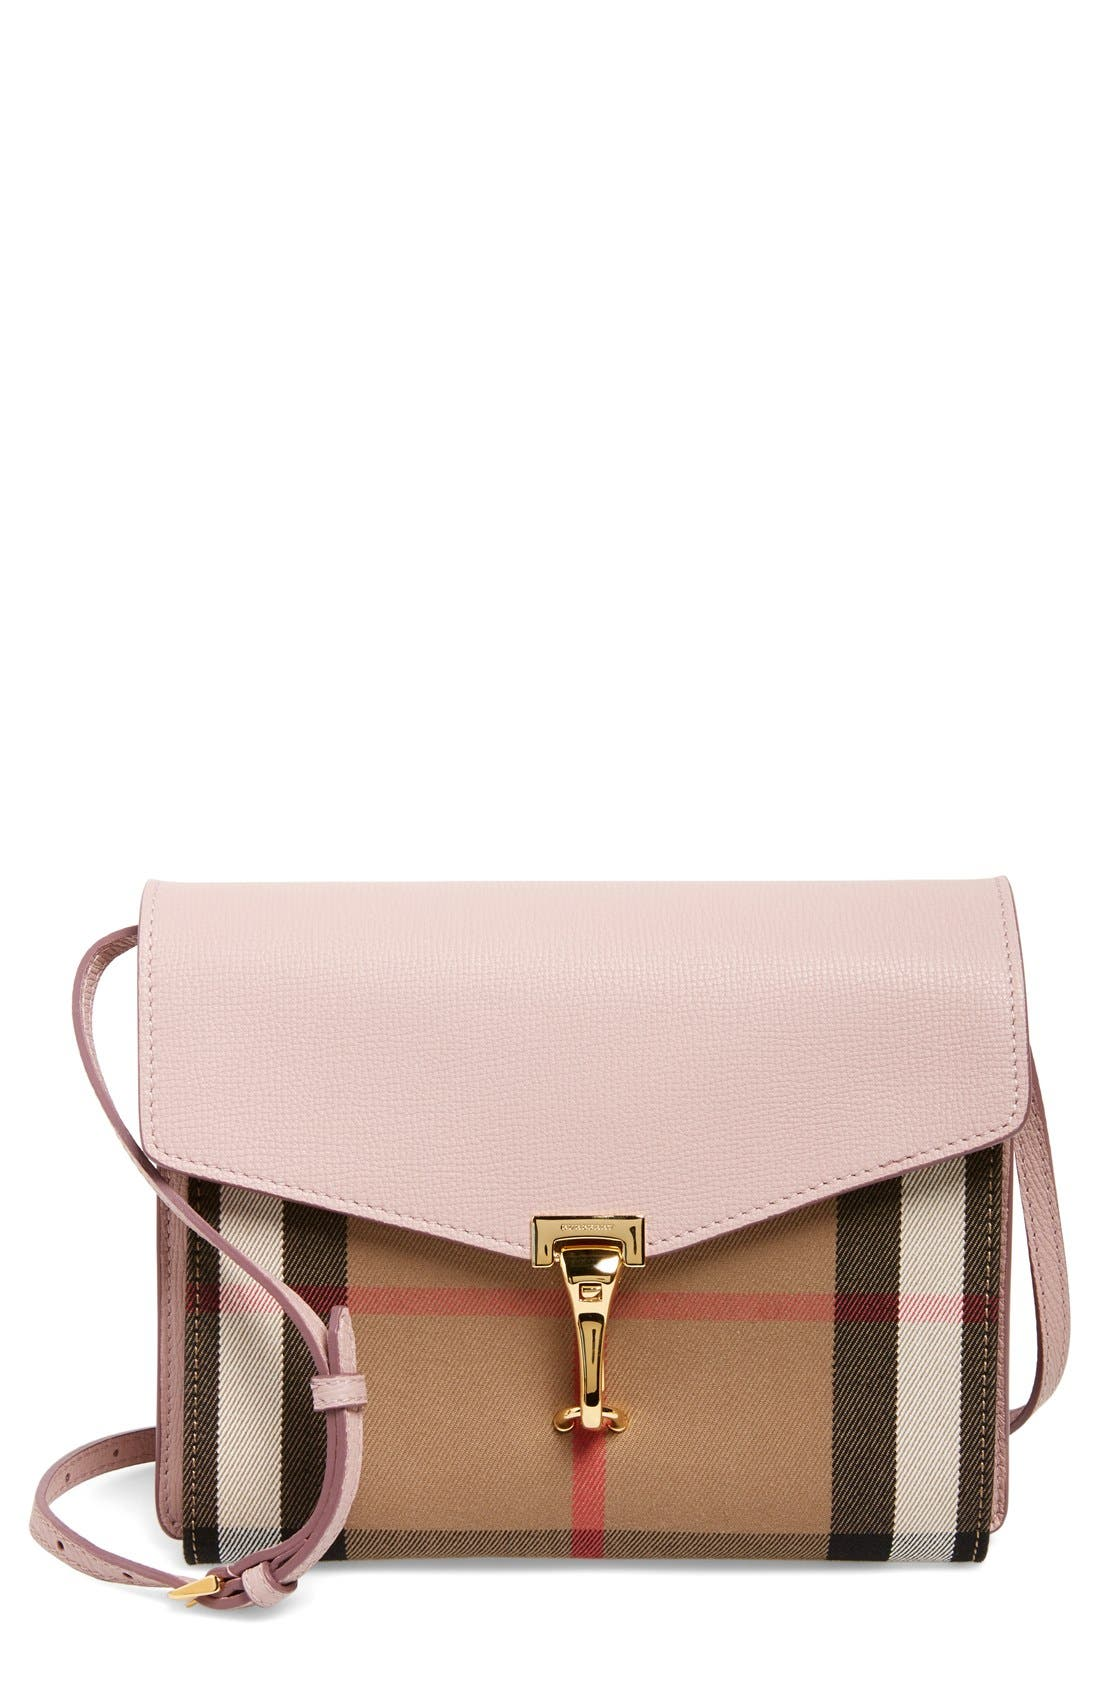 'Small Macken' Check Crossbody Bag,                         Main,                         color,